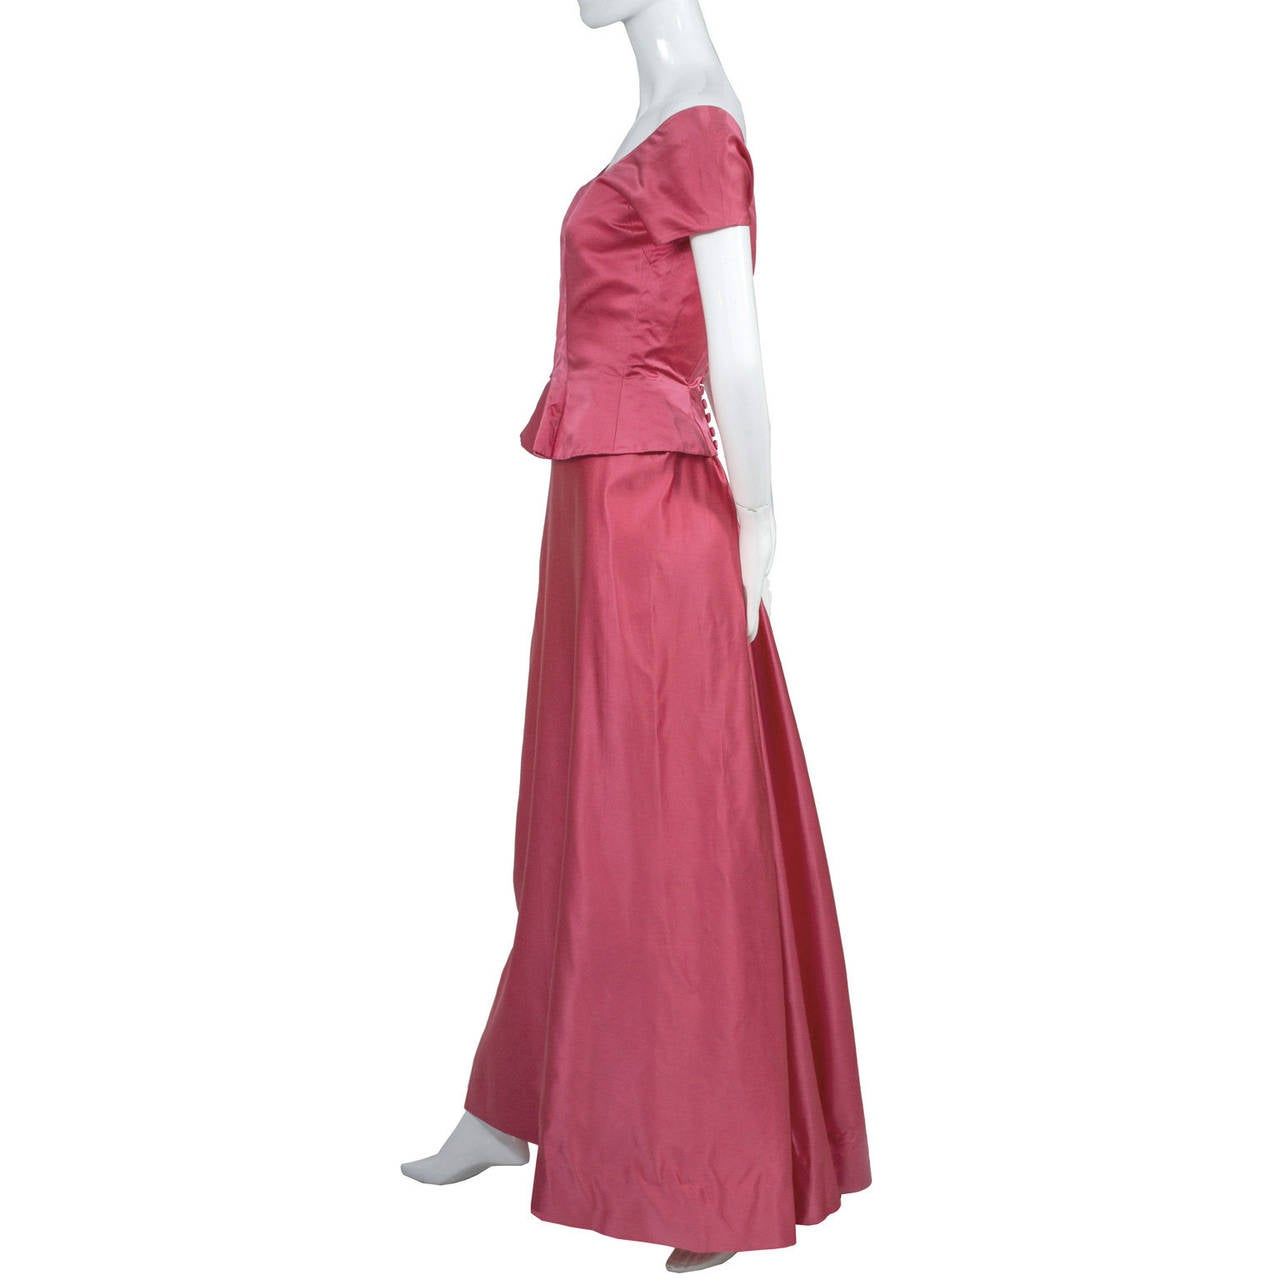 1950s Rare Clare Potter Vintage Pink Long Evening Gown Documented 3